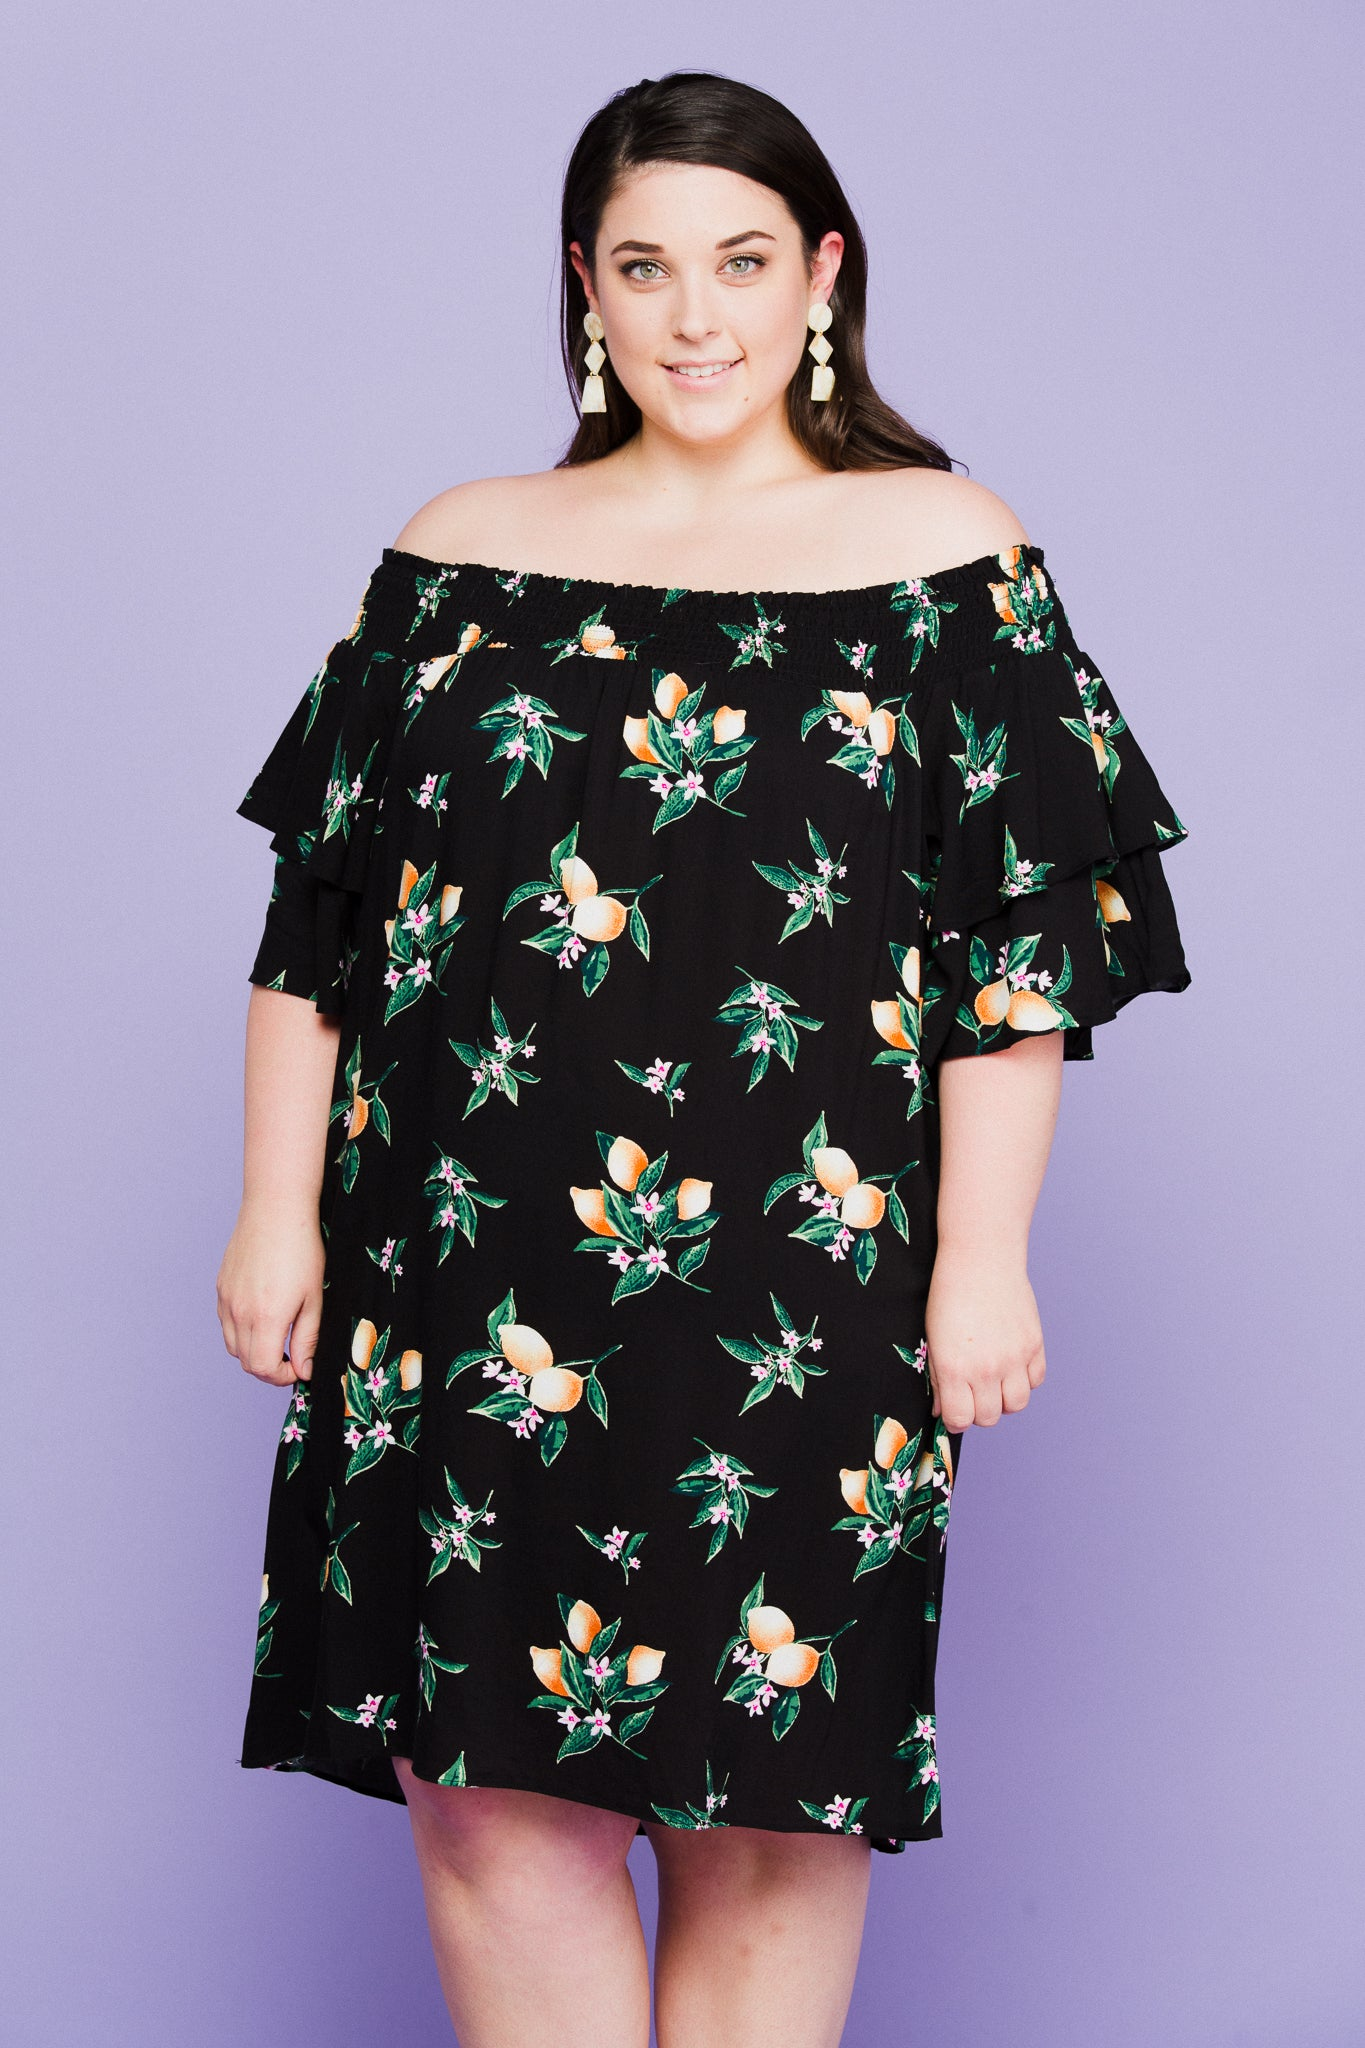 Piña Colada Dress